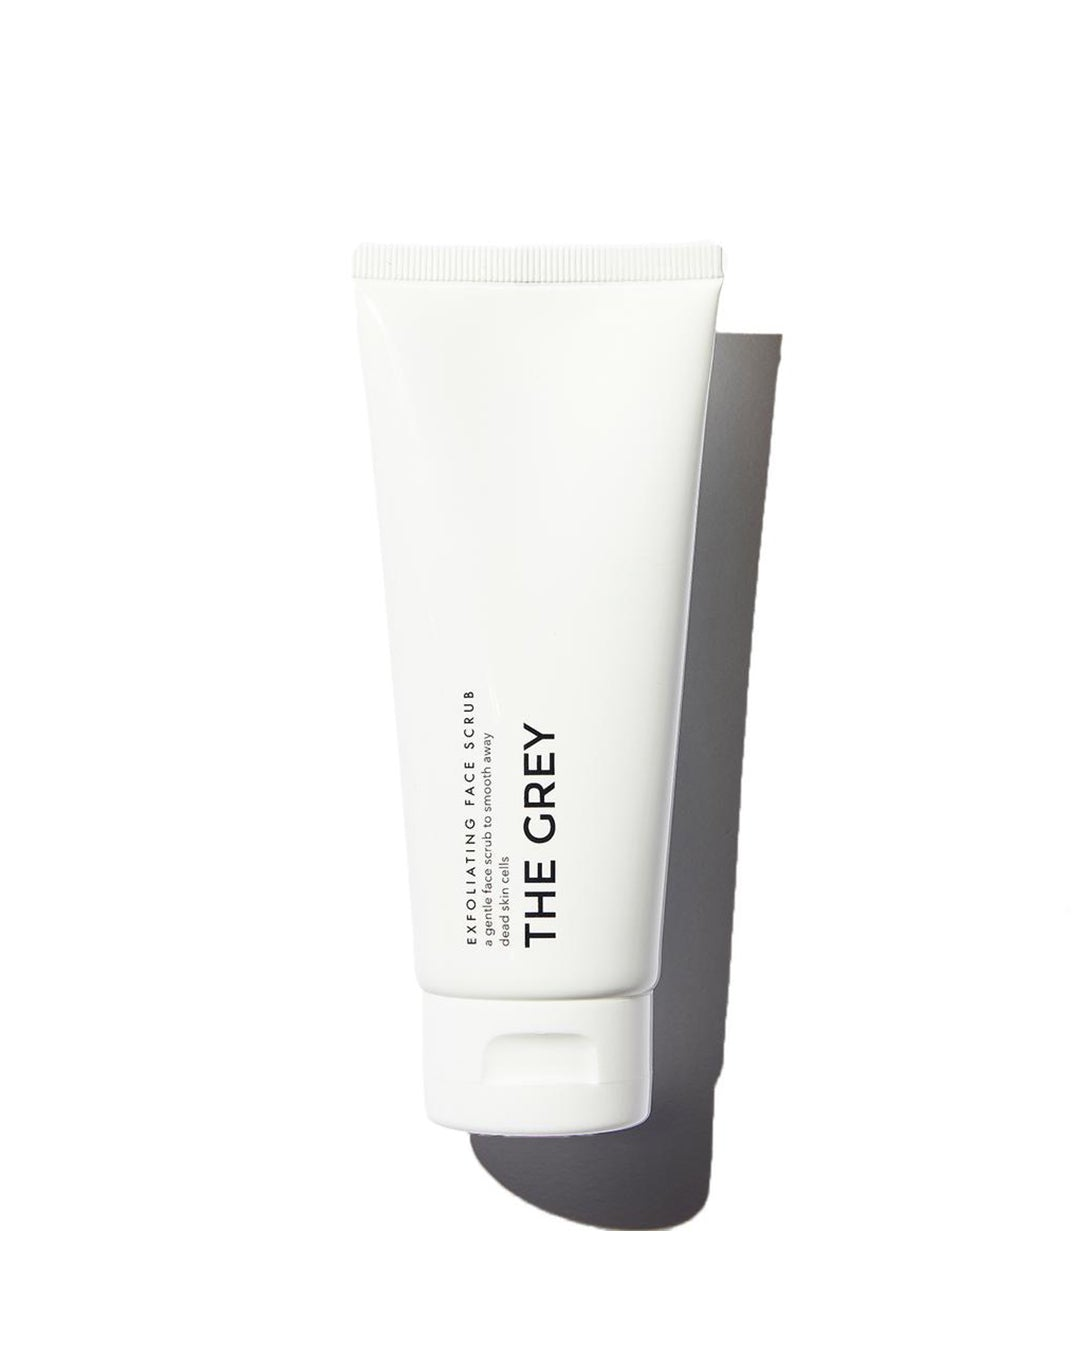 The Grey | Exfoliating Face Scrub